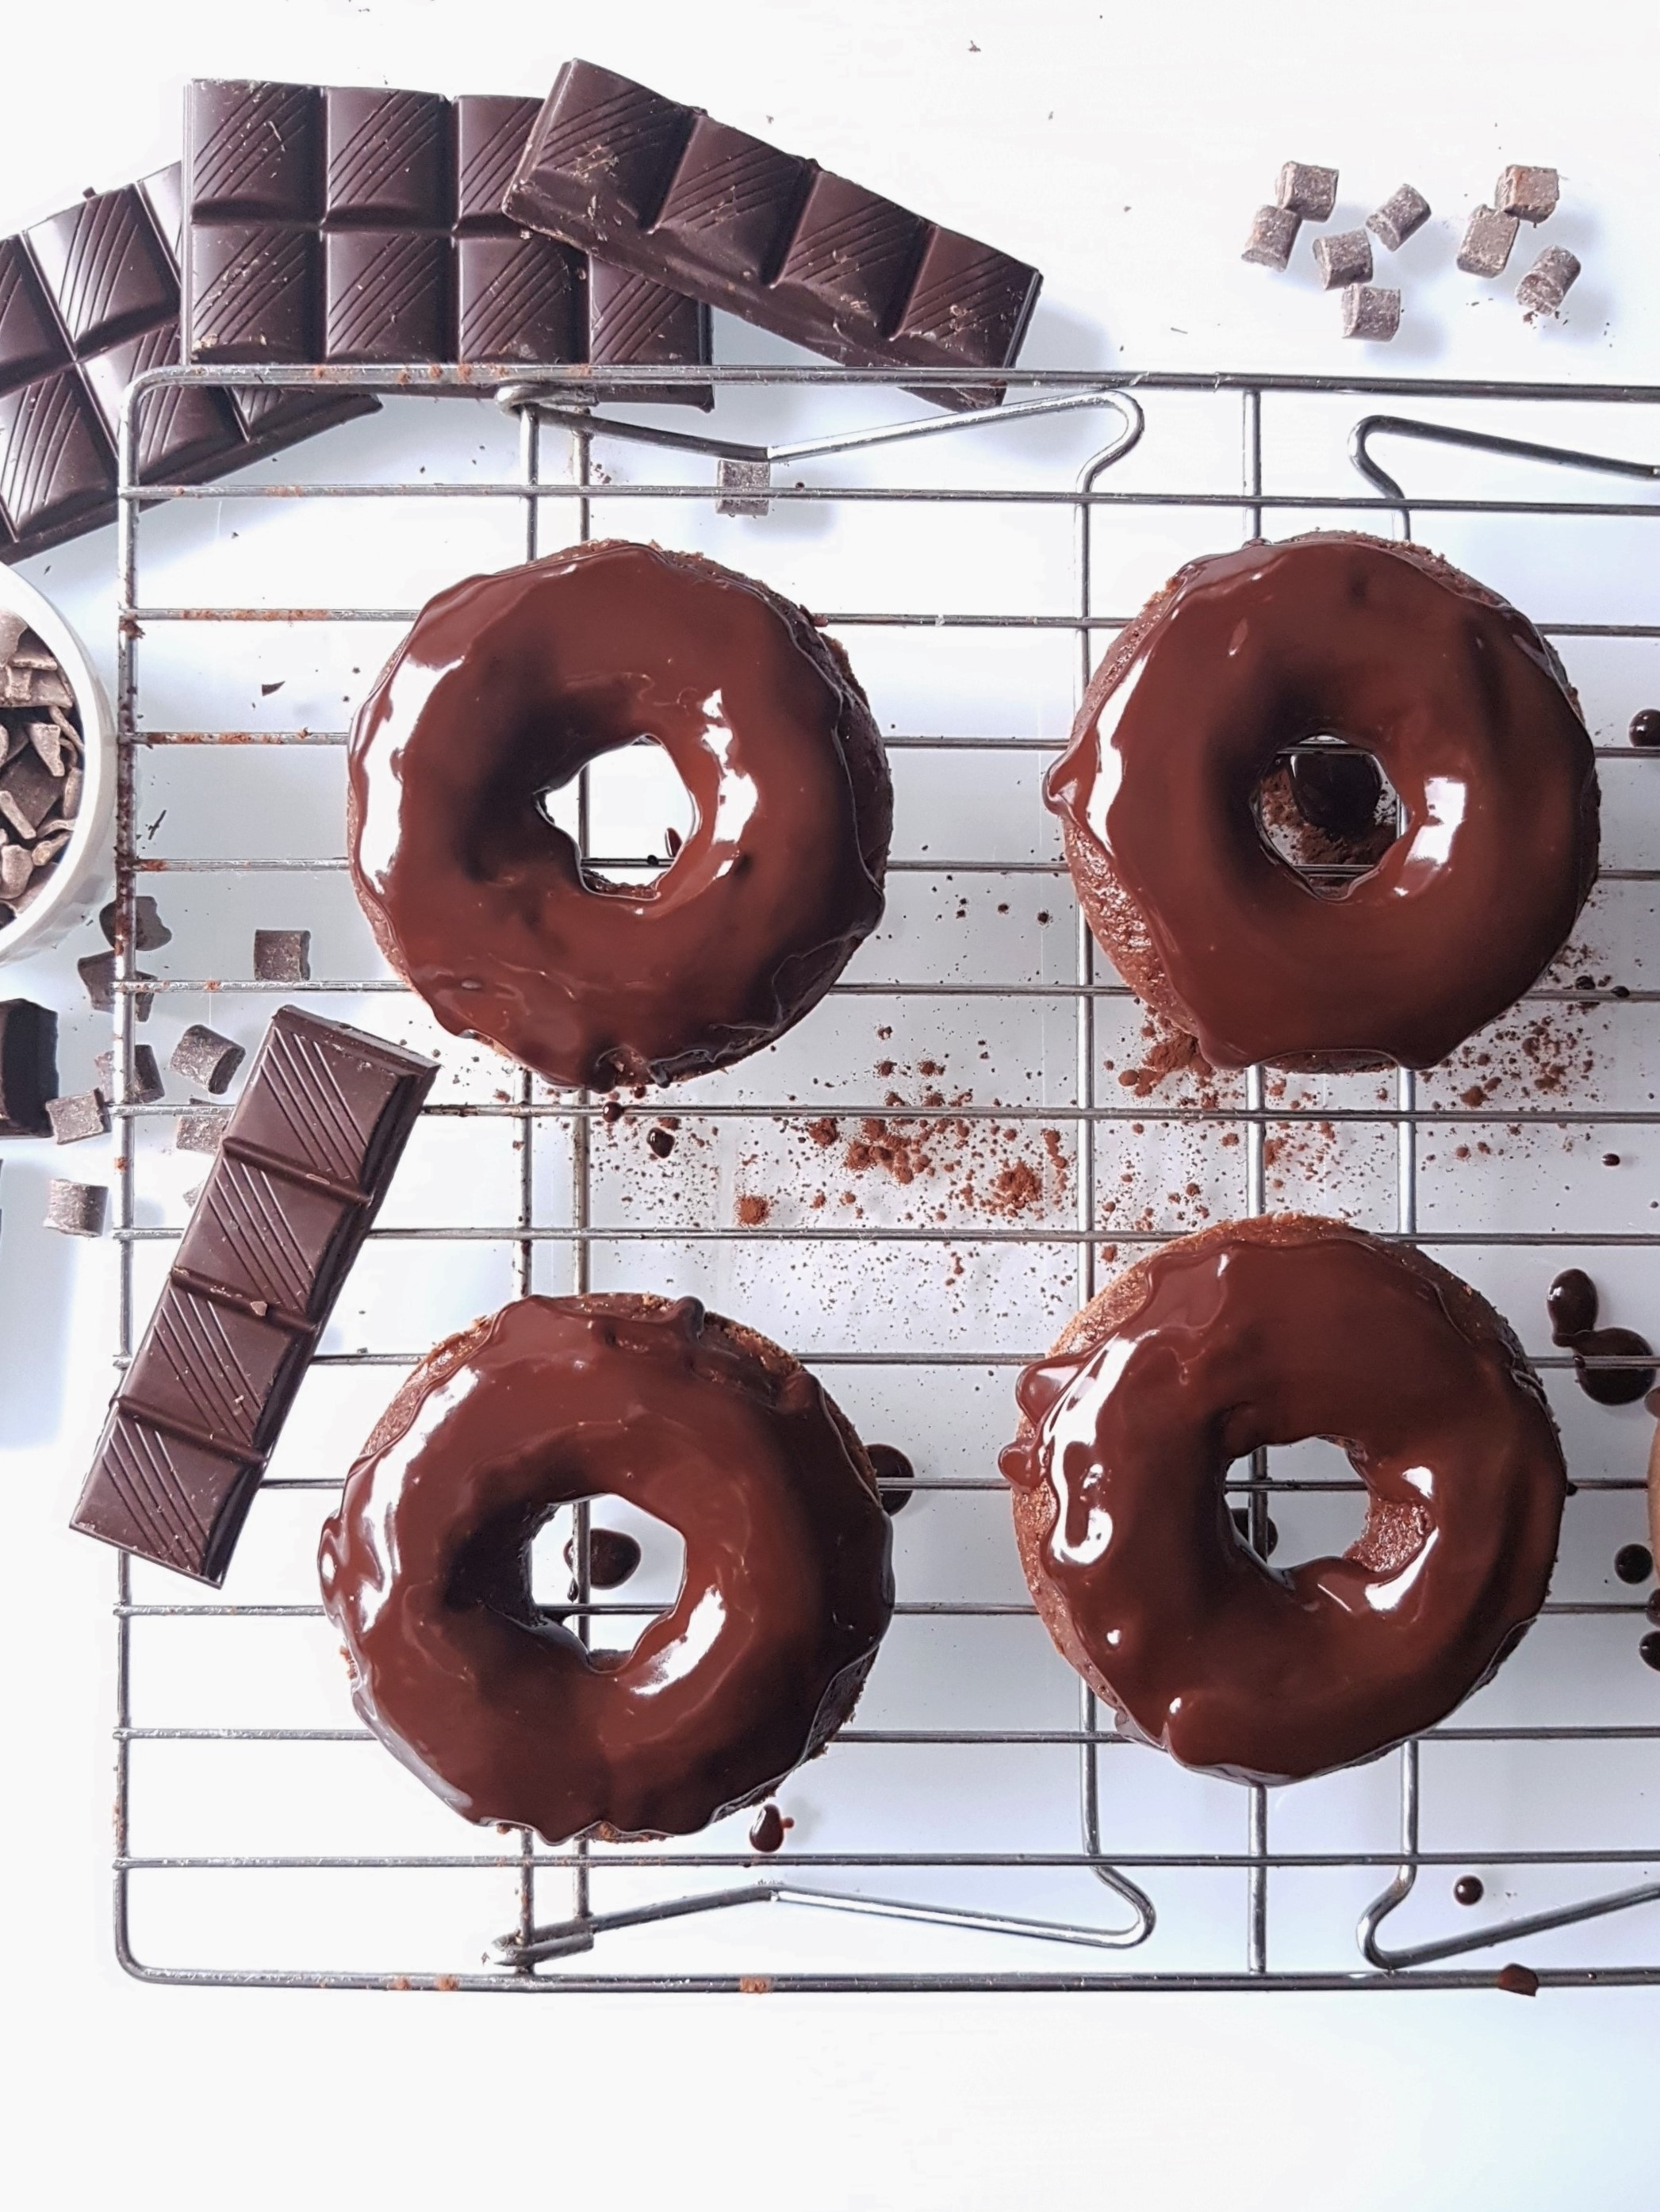 Triple Chocolate Donuts41